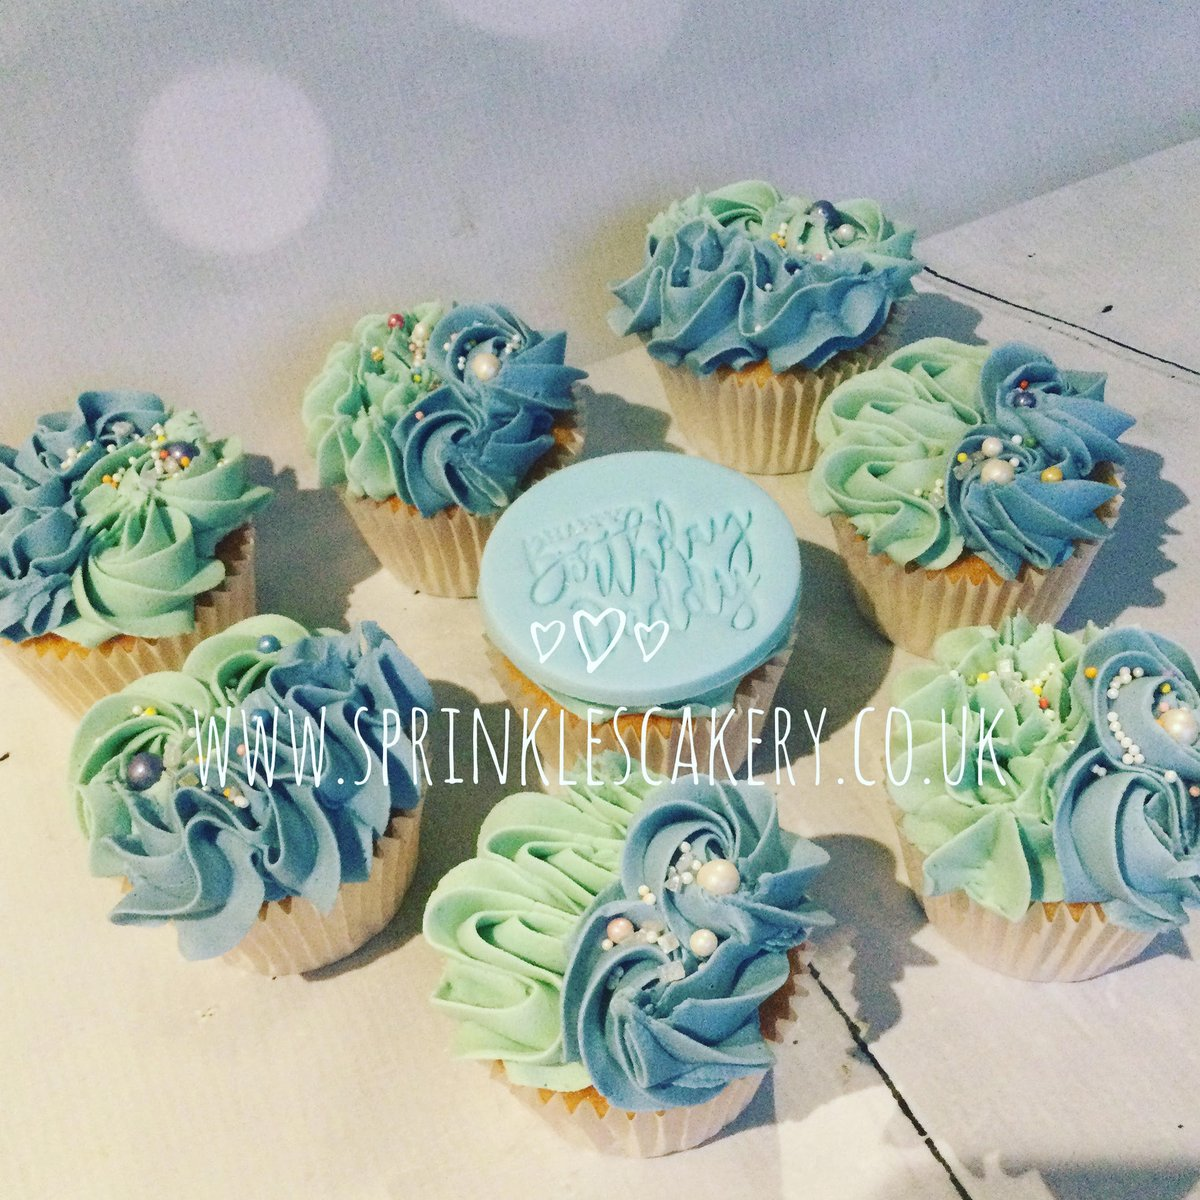 A batch of personalised vanilla cupcakes for a birthday celebration yesterday. #sprinklescakery #tunbridgewells #cakemaker #kent #cupcakes #freshlybaked #buttercreampiping #happybirthday #daddy #family #celebration #blue #supportsmallbusiness #supportlocal #baker #WAHM #mumof3